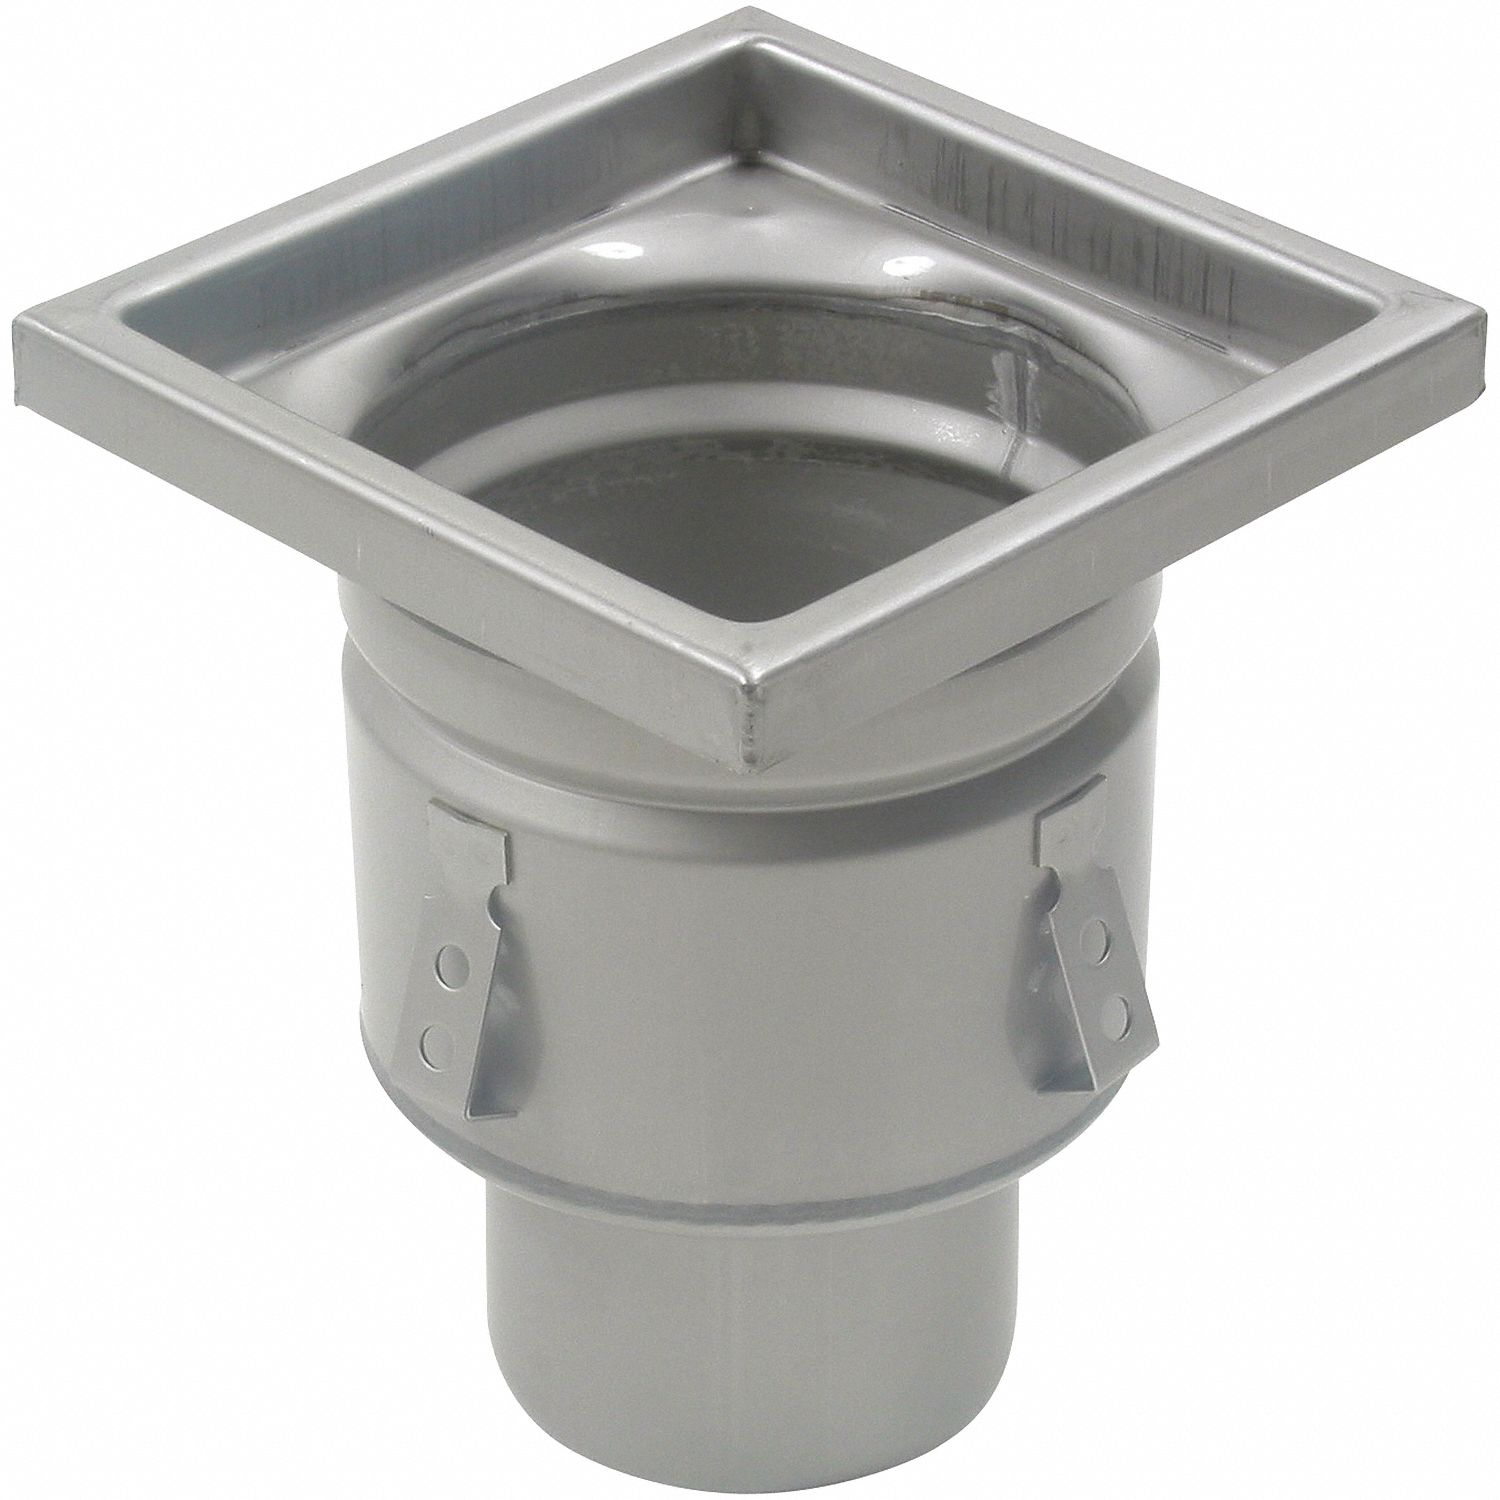 304 stainless steel square floor drain no hub pipe dia drains 3 in